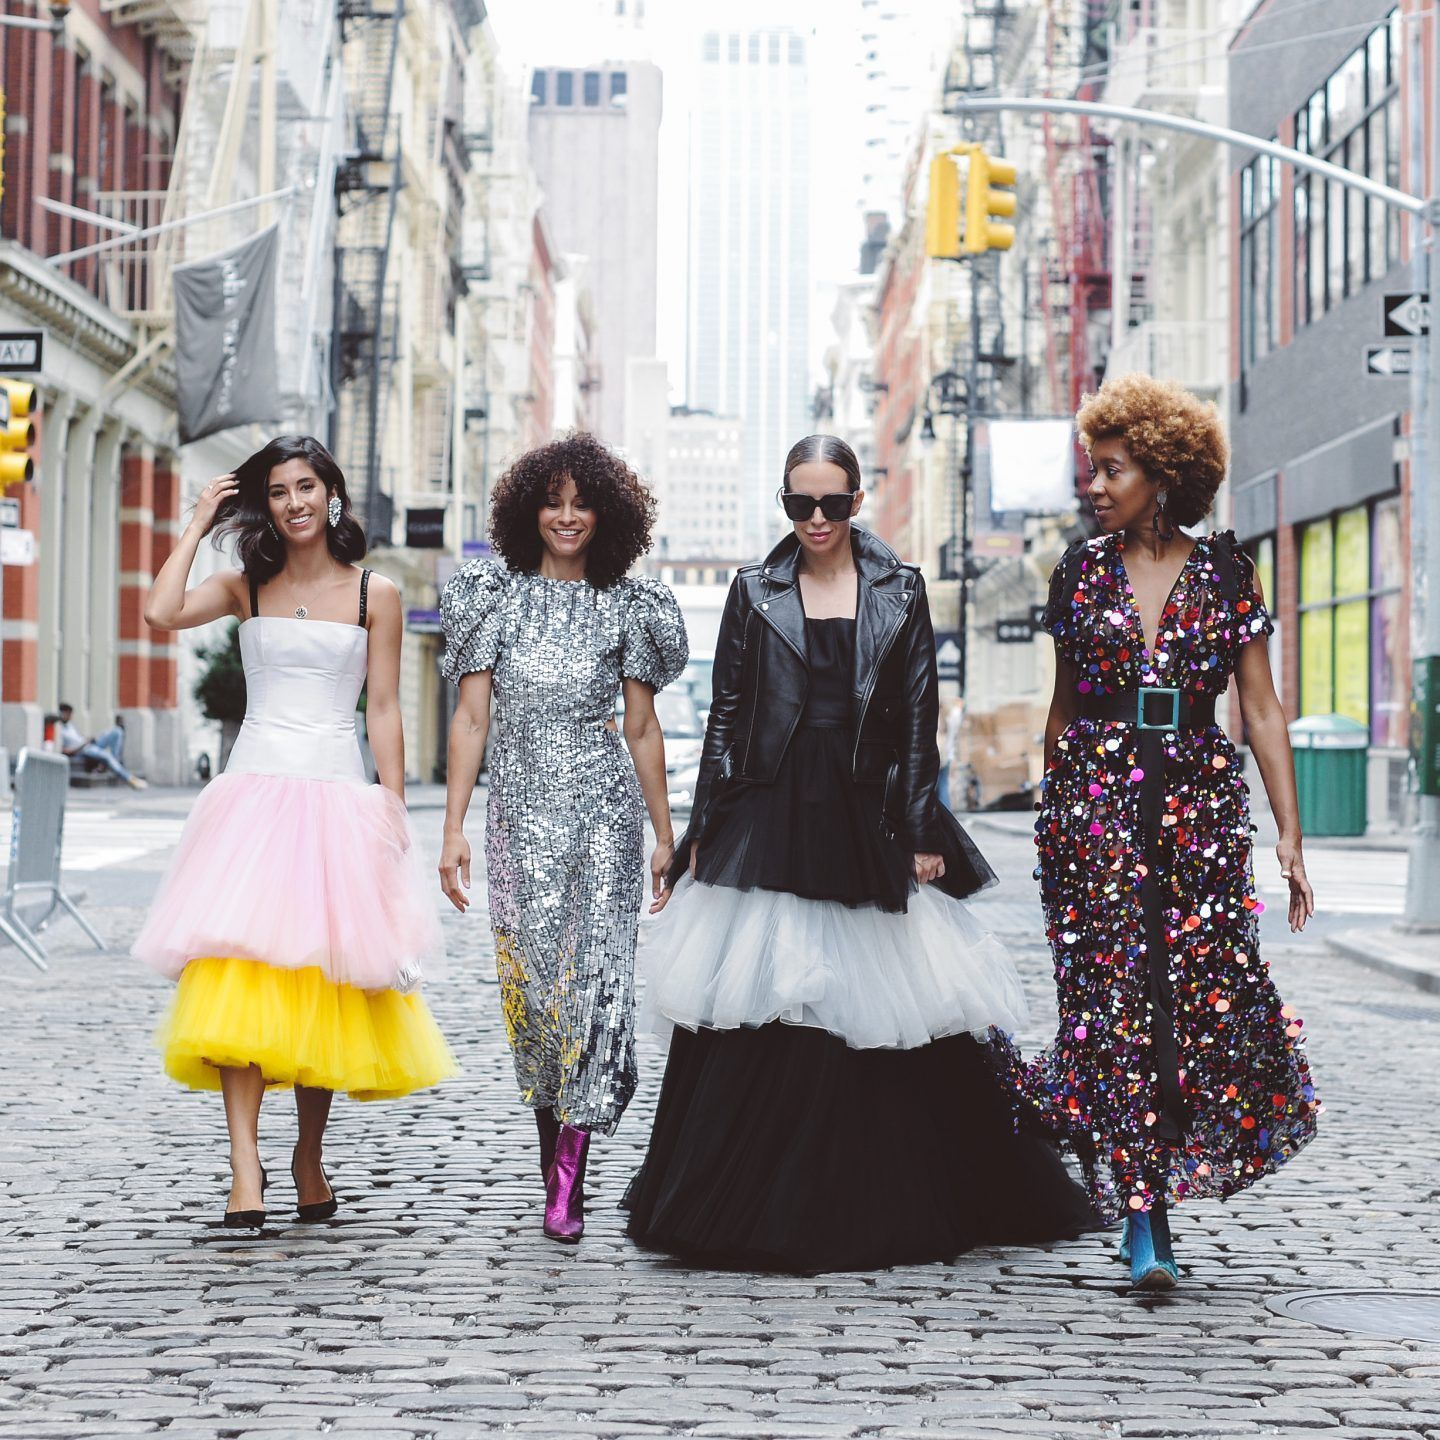 Fashion Beauty Inc: High Fashion Glam And Industry Diversity